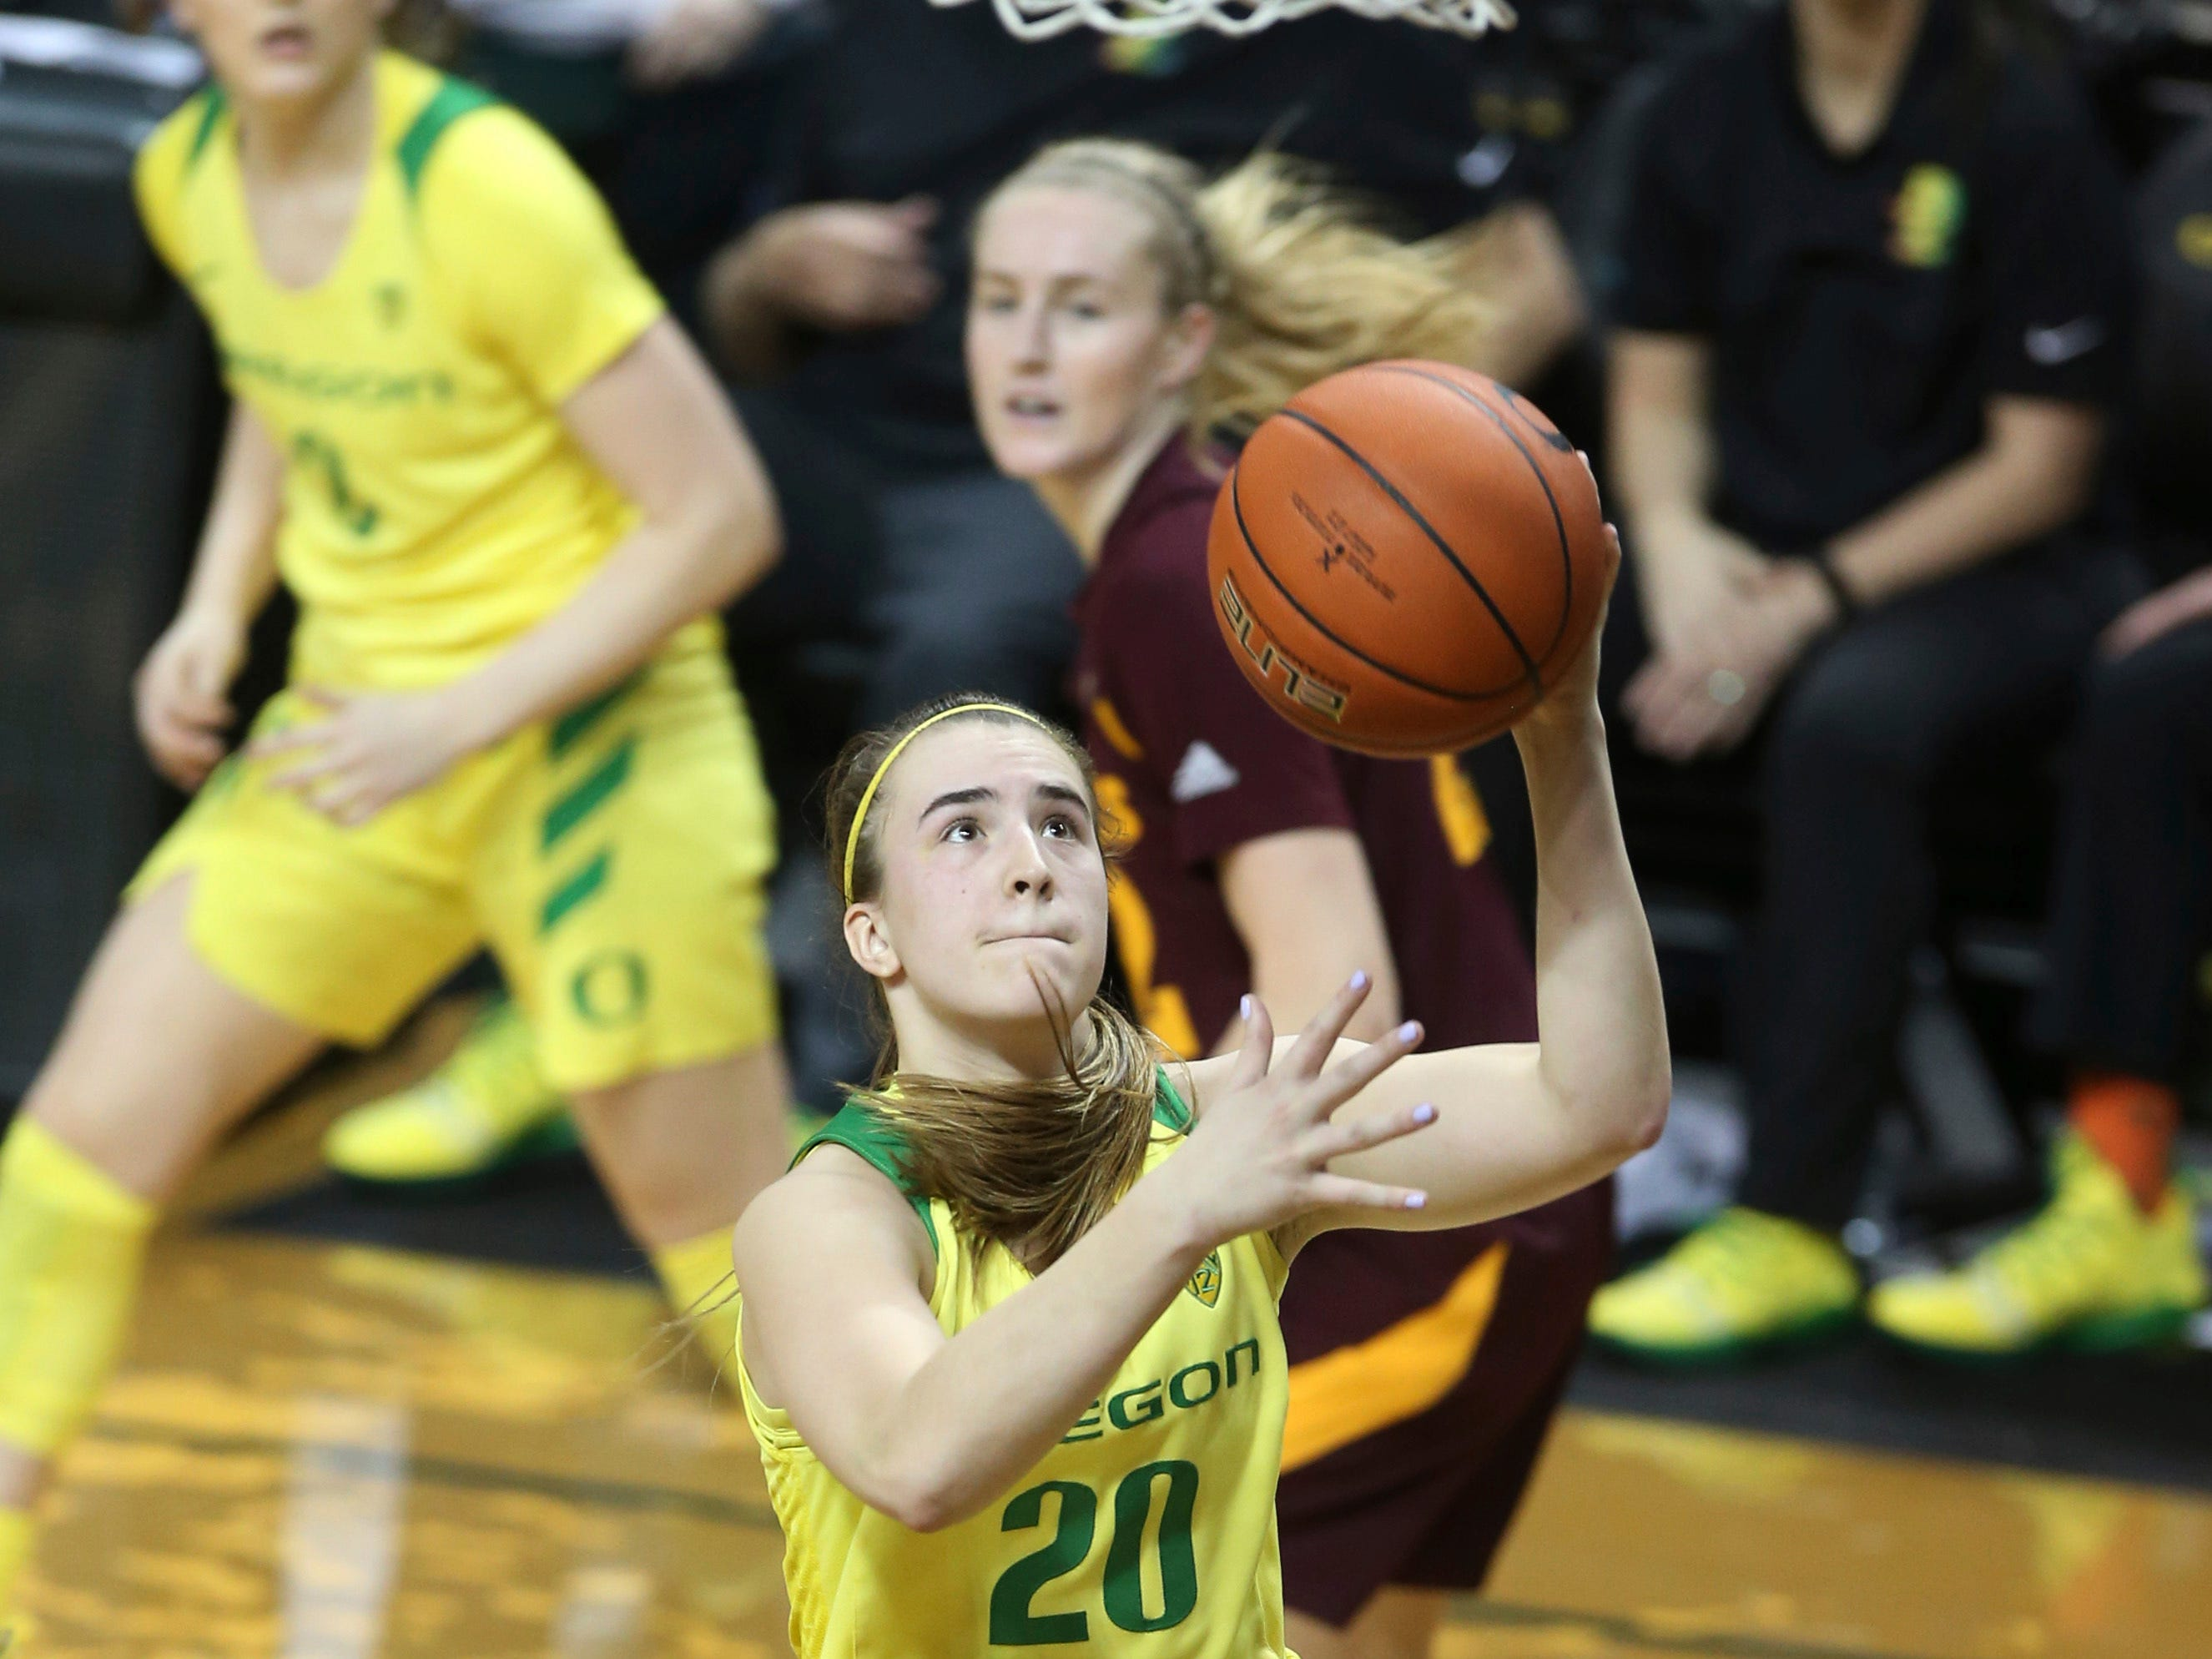 Oregon's Sabrina Ionescu, center, goes up for a shot ahead of teammate Taylor Chavez, left, and Arizona State's Courtney Ekmark during the fourth quarter of an NCAA college basketball game Friday, Jan 18, 2019, in Eugene, Ore. (AP Photo/Chris Pietsch)